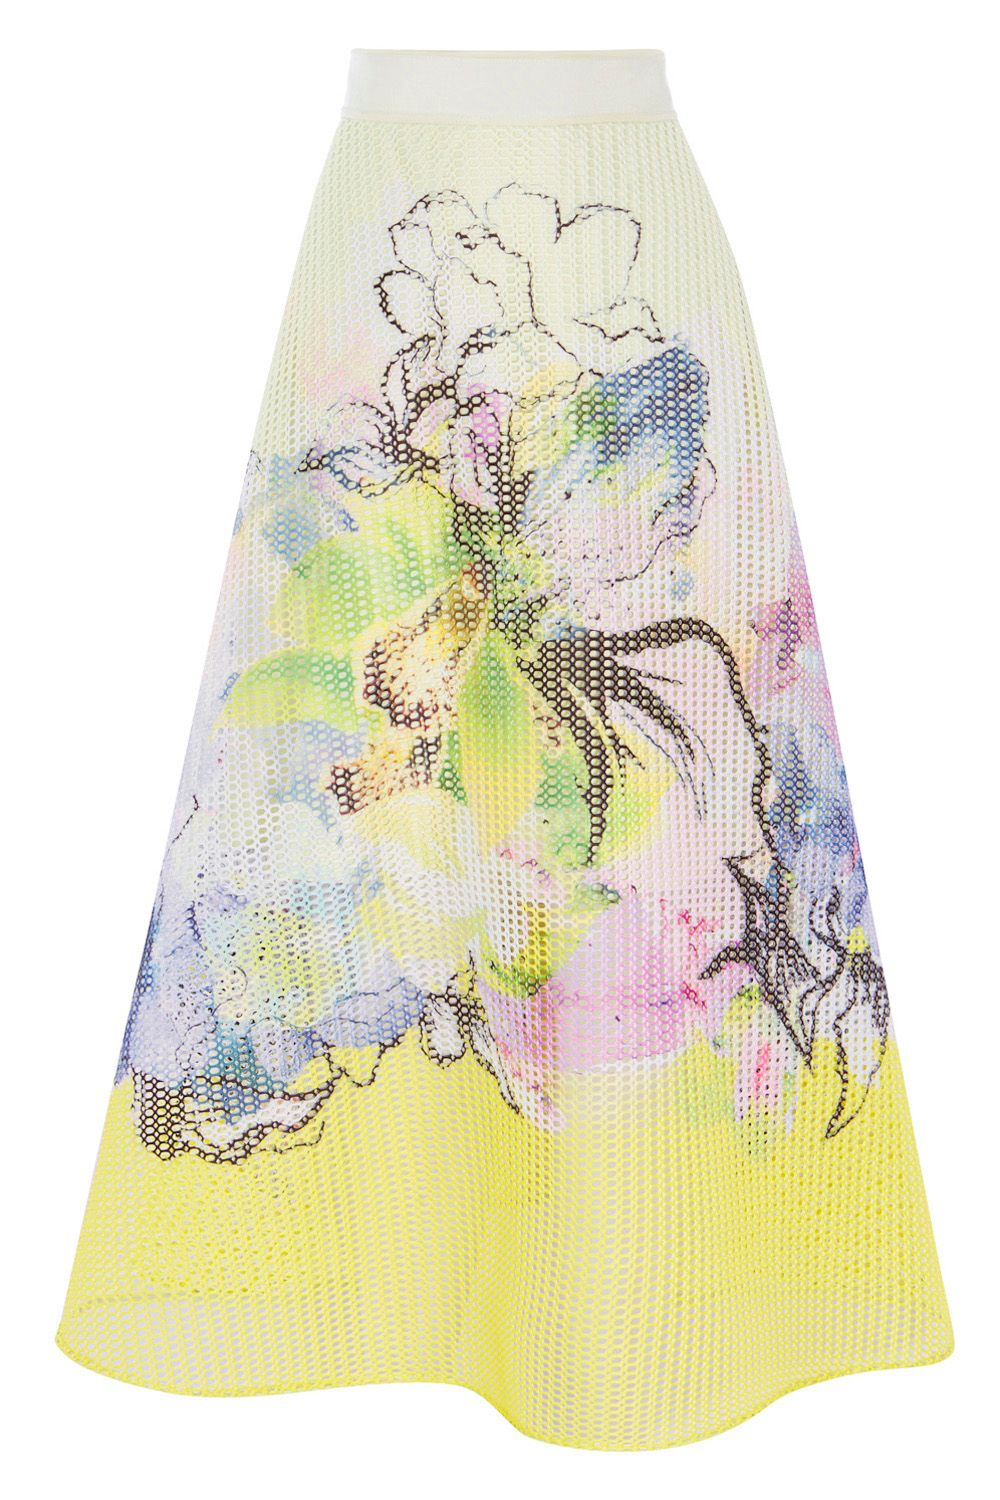 Coast Daisy Mesh Skirt, Lime